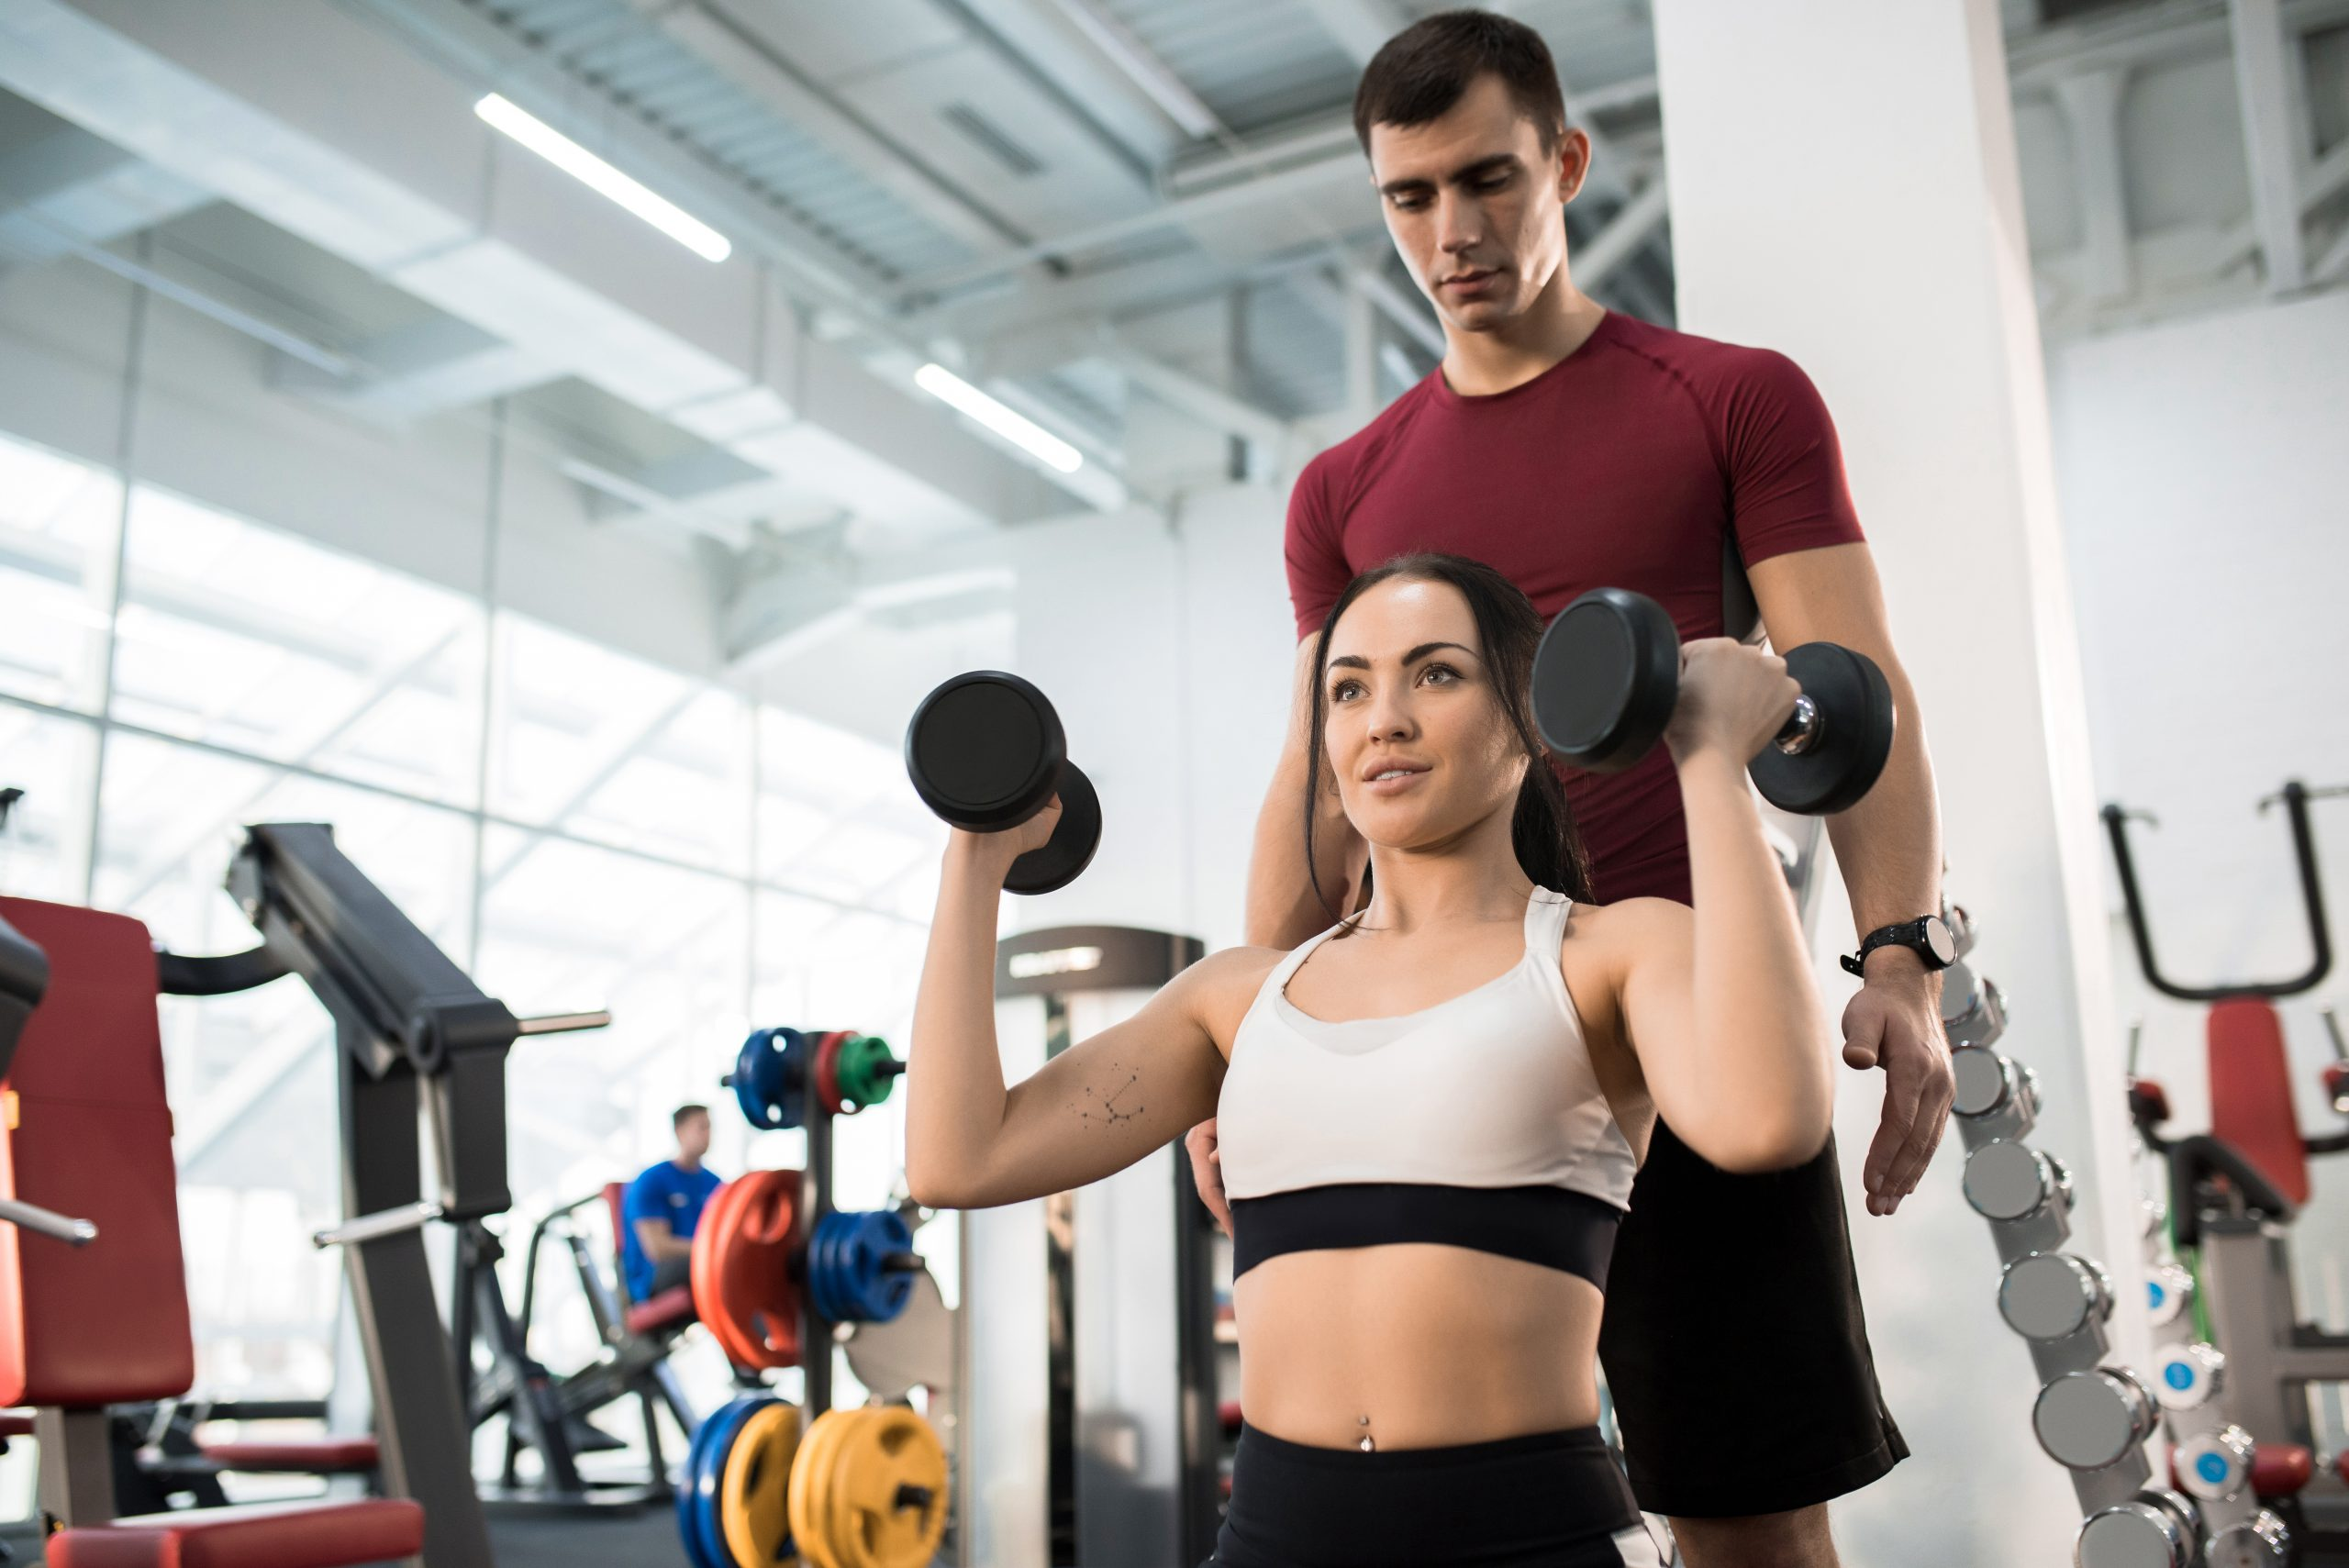 a trainer helping a woman lift weights for a strength and conditioning routine